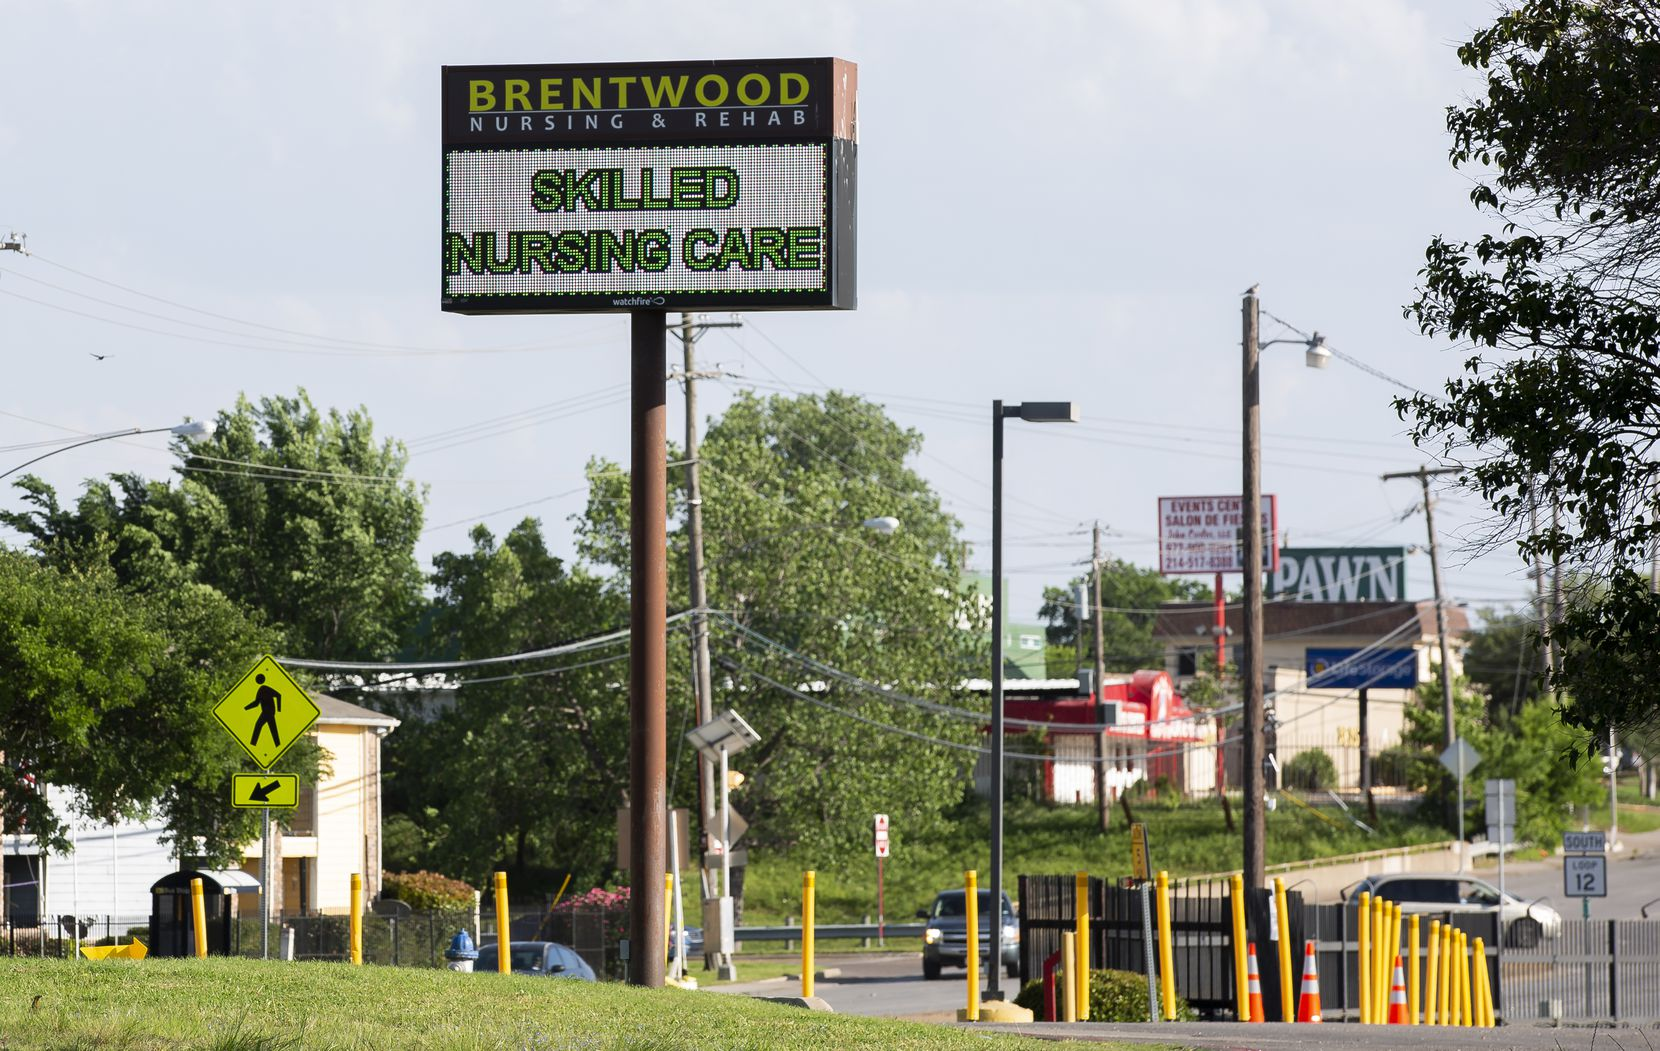 A sign outside of Brentwood Nursing & Rehab on April 24, 2020 in Dallas. (Juan Figueroa/ The Dallas Morning News)